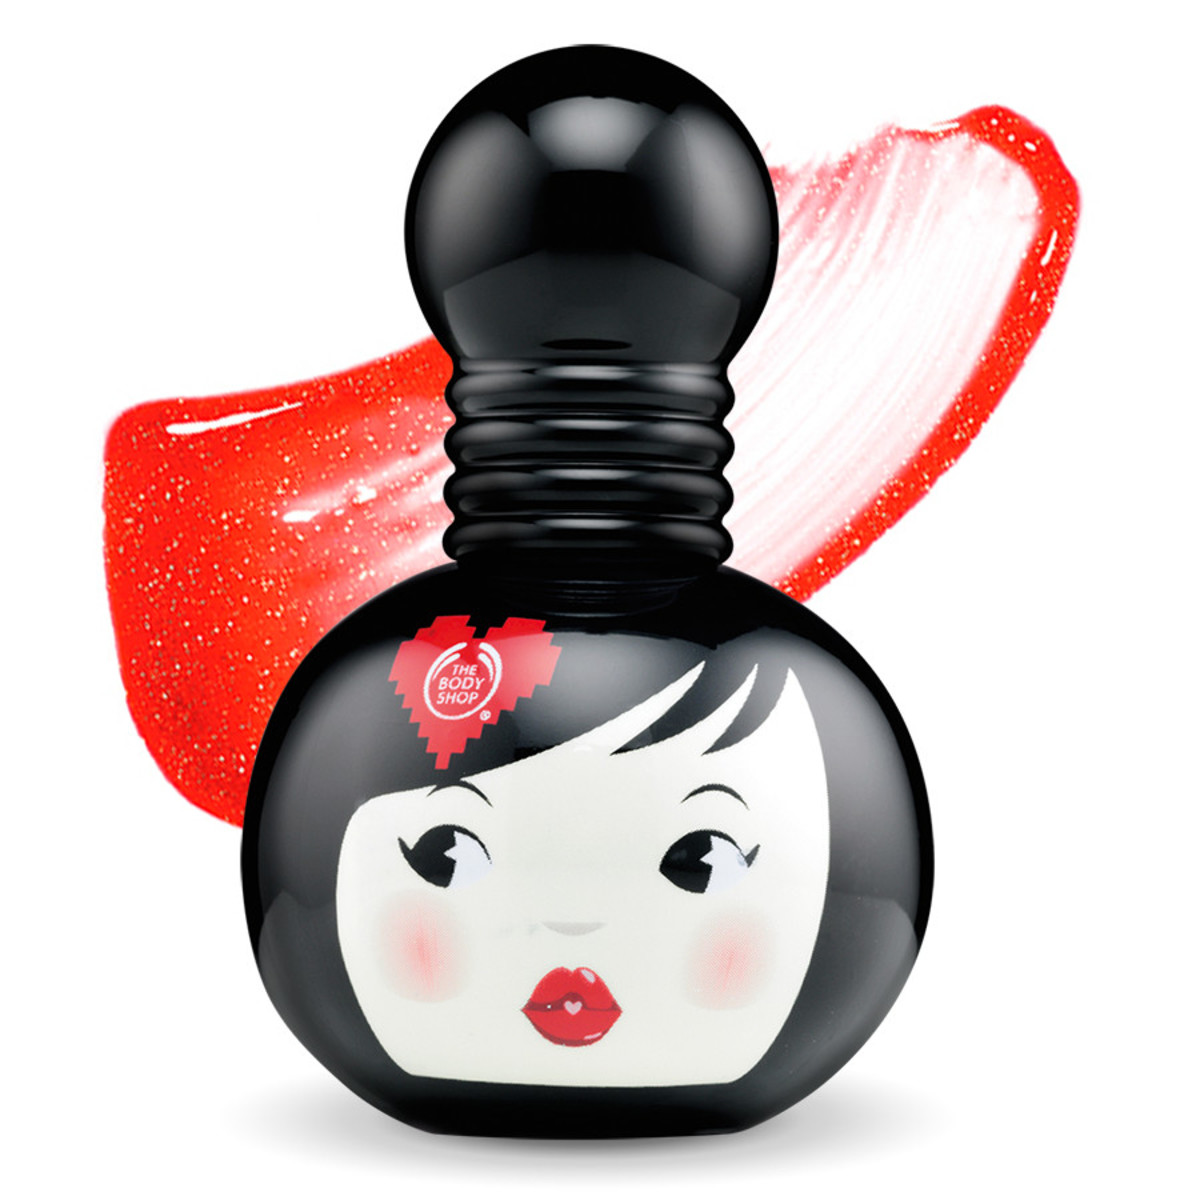 The Body Shop Geisha Doll Lip & Cheek Stain